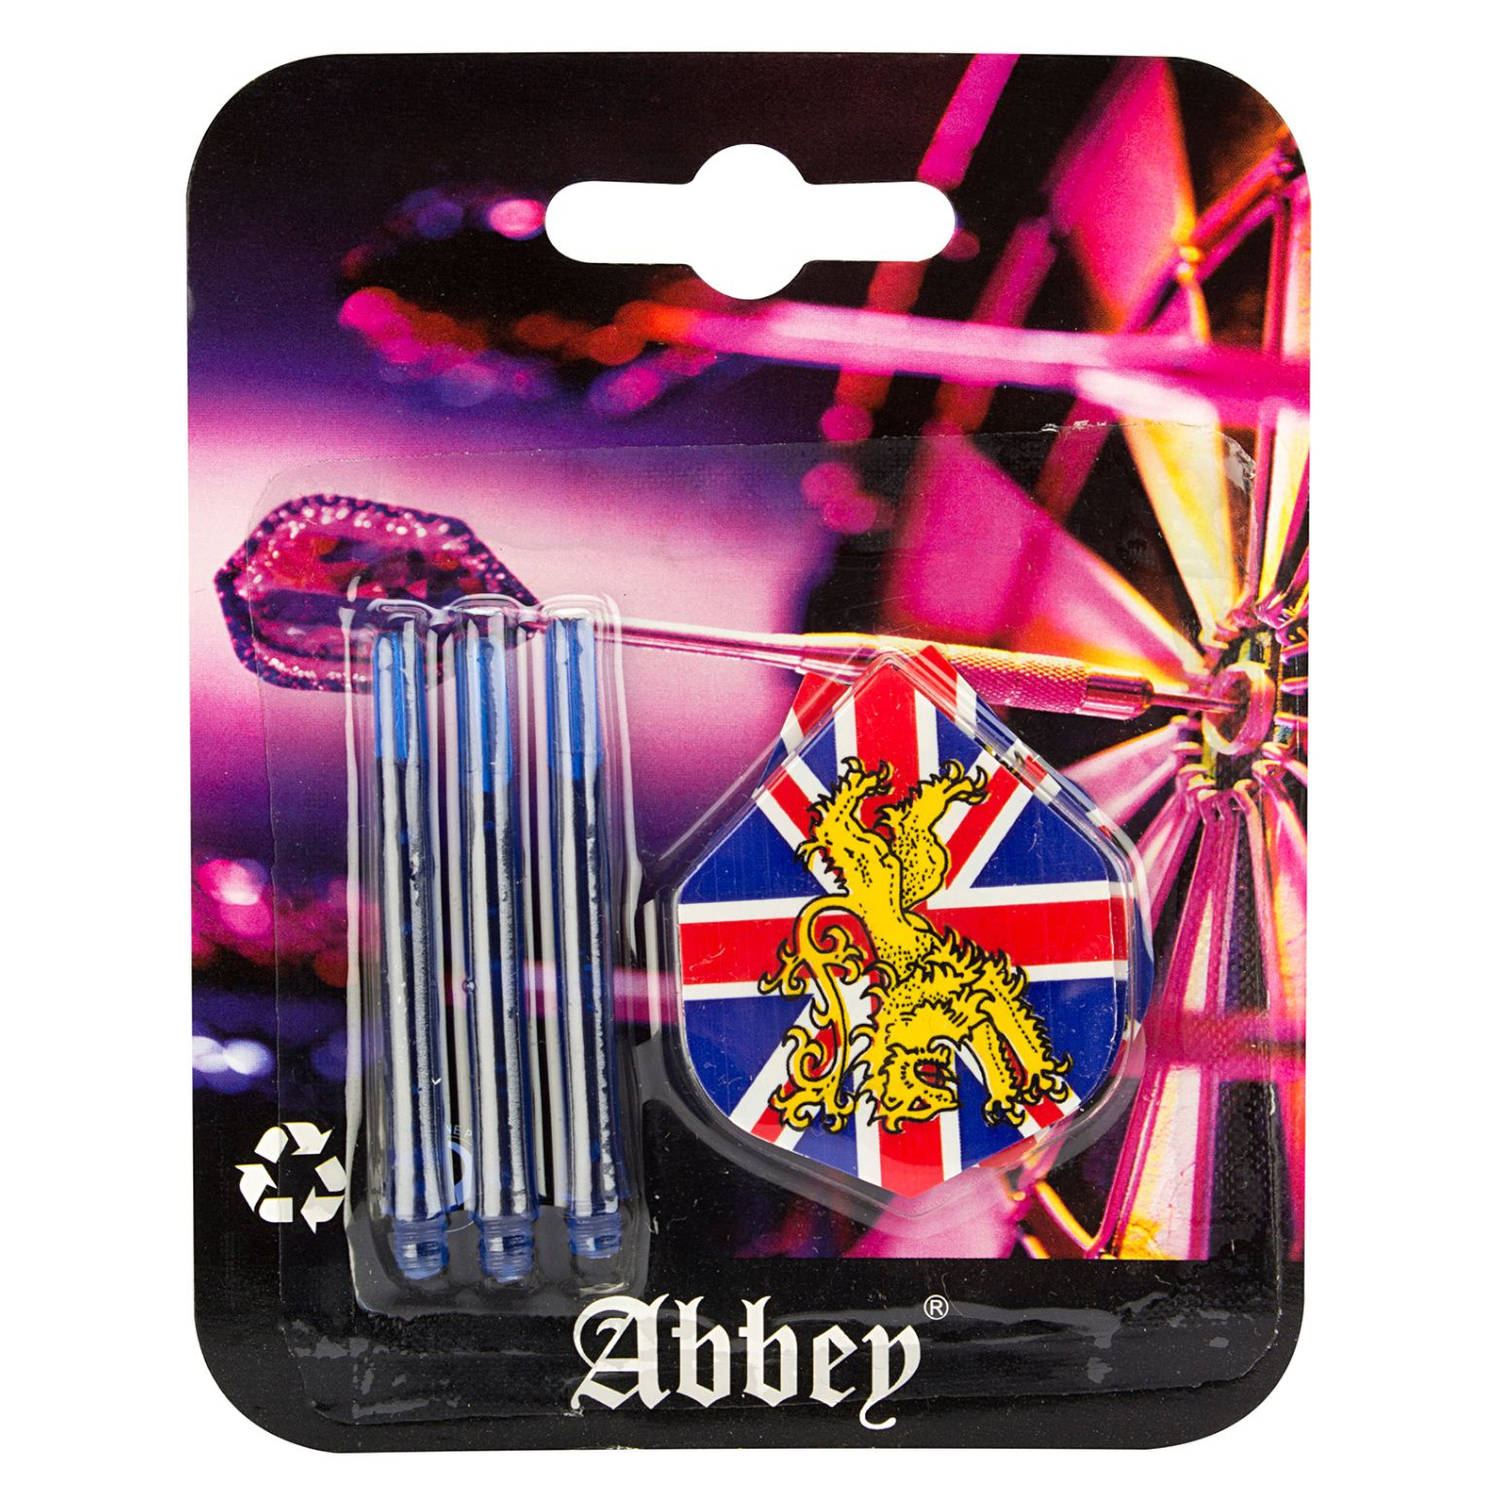 Korting Abbey Darts Dartflights En Shafts Pvc Transperant 6 delig